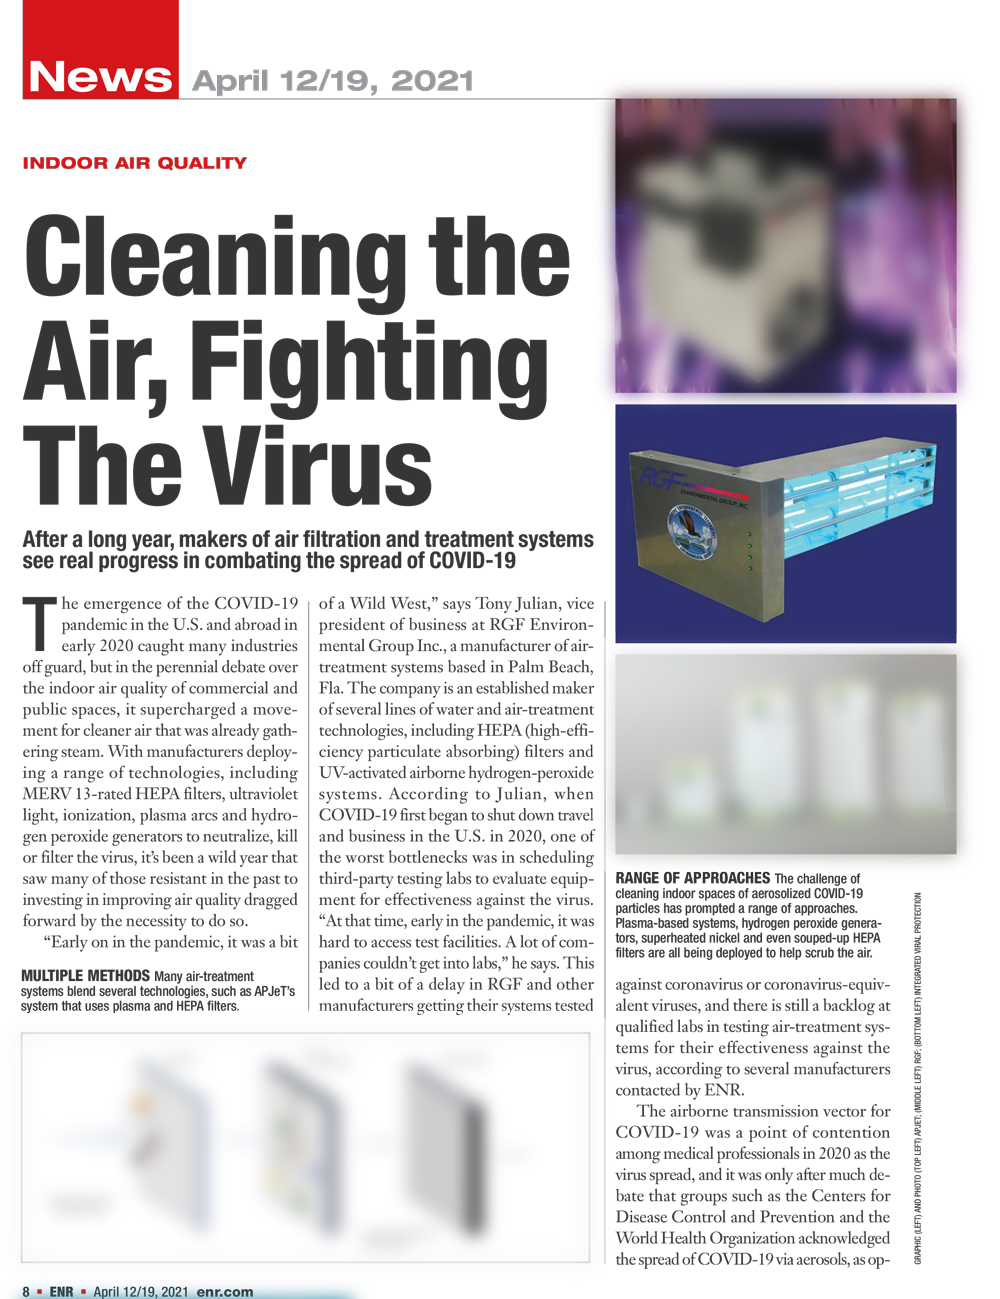 ENR, April 2021 - 'Cleaning the air, fighting the virus'